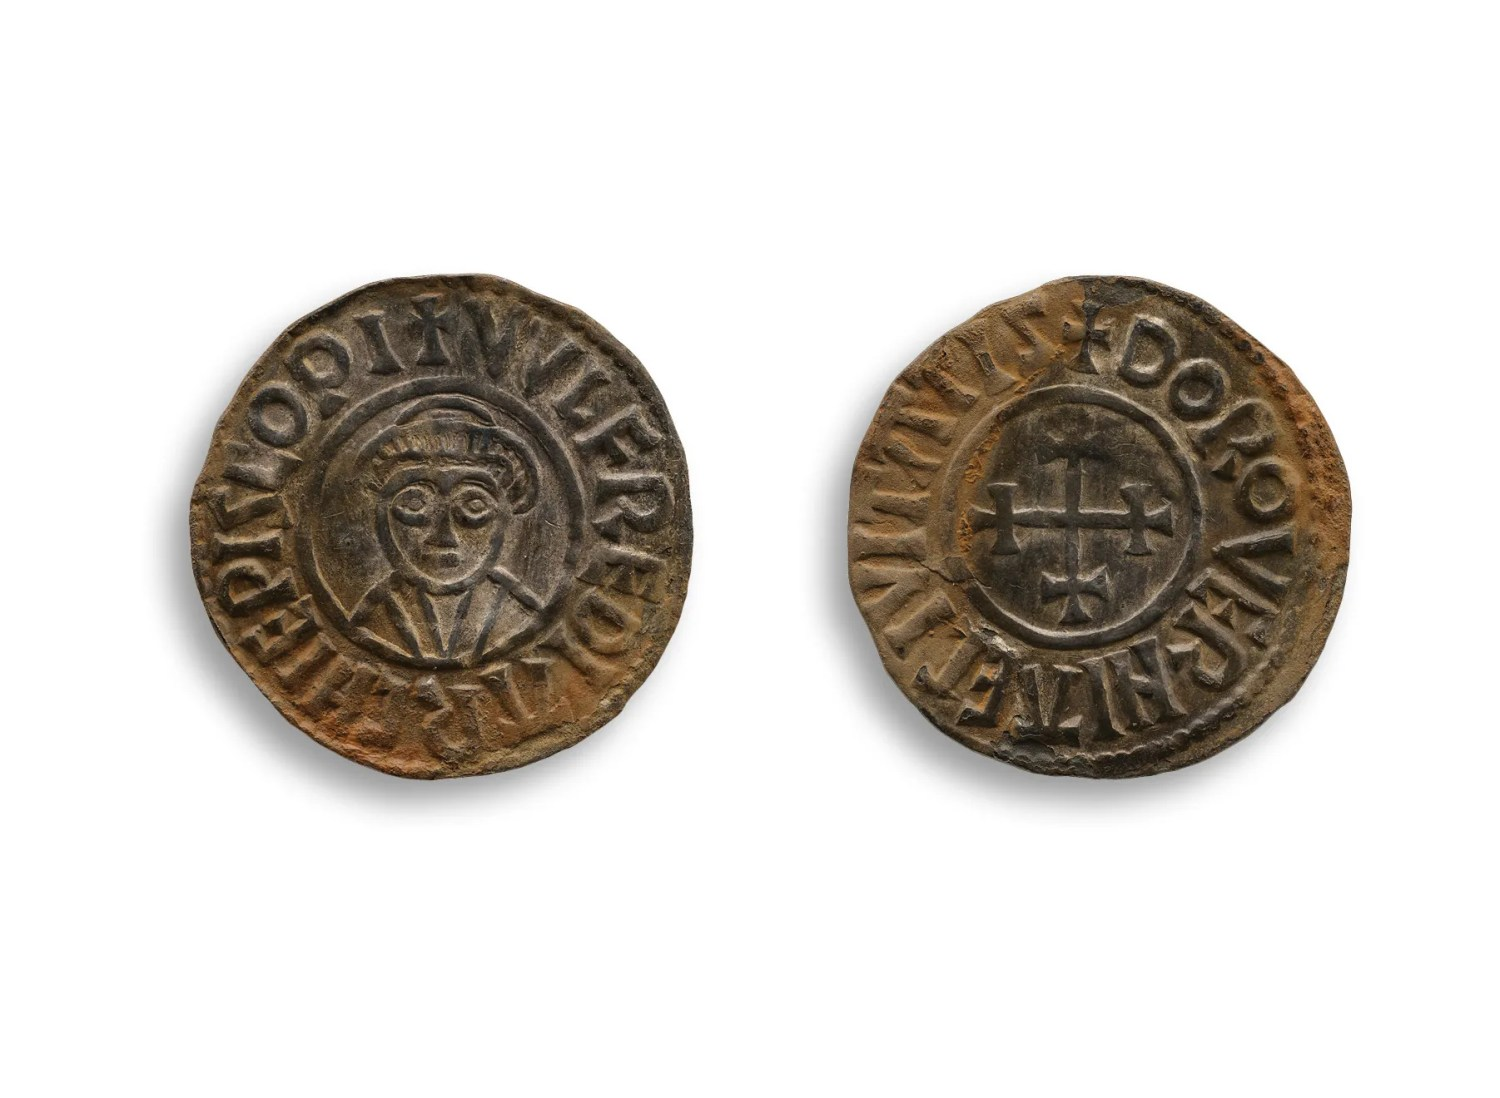 RIGHT This silver penny was issued by Wulfred, Archbishop of Canterbury, between 805 and 832; the other known Anglo-Saxon coins in the hoard were all minted in the name of Alfred the Great and Ceolwulf II, 9th-century rulers of Wessex and Mercia.